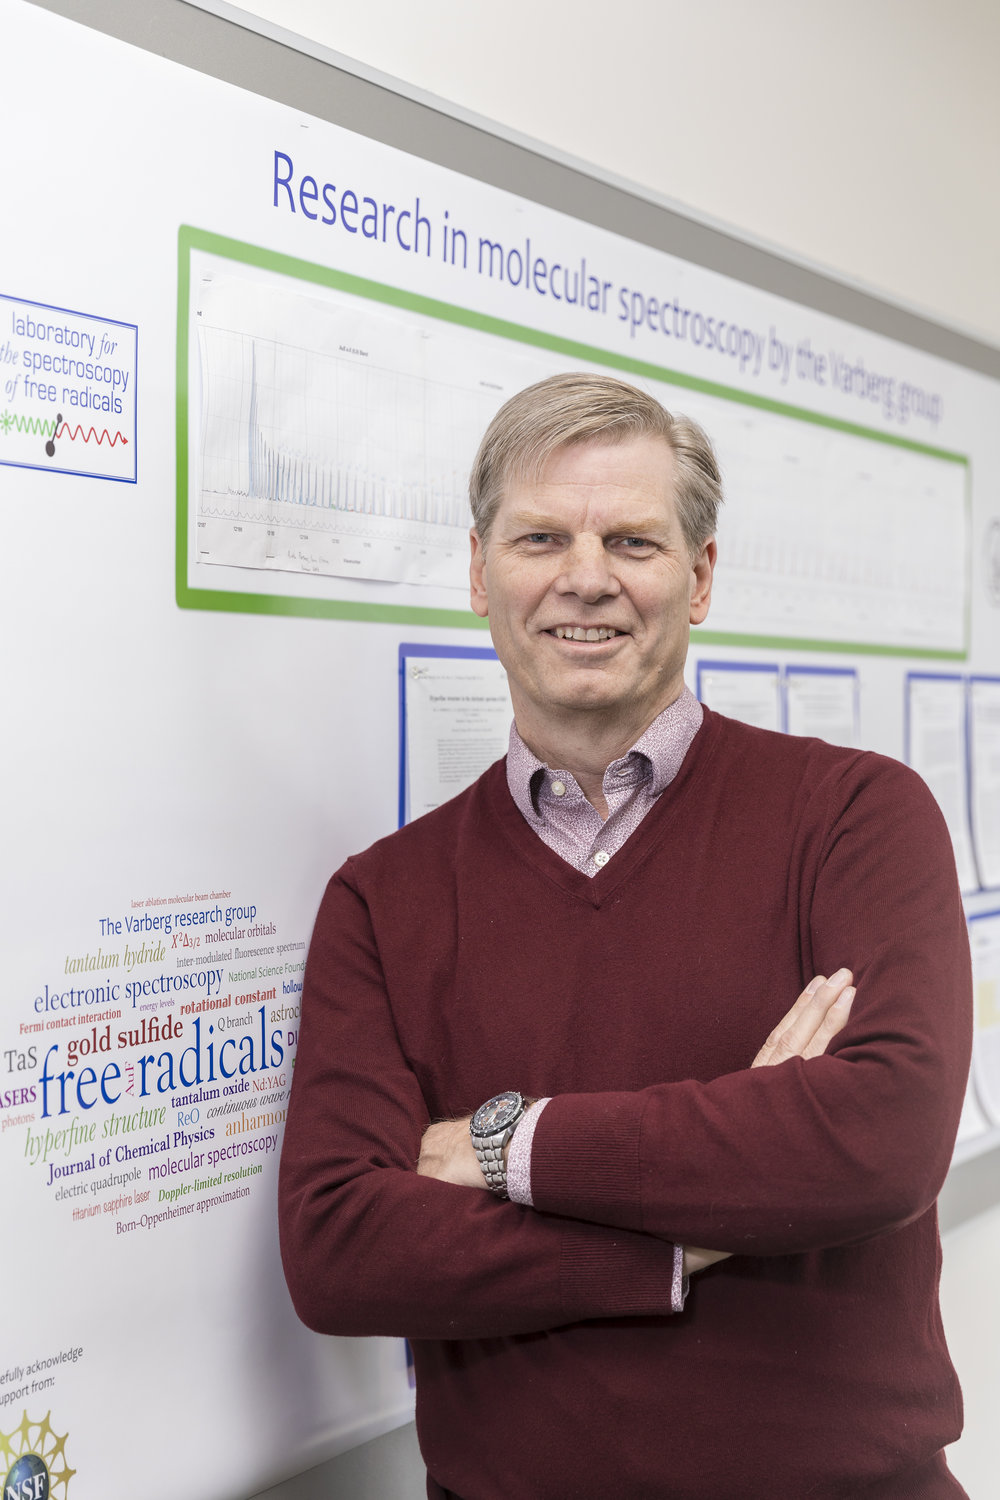 Picture of Professor in front of research poster